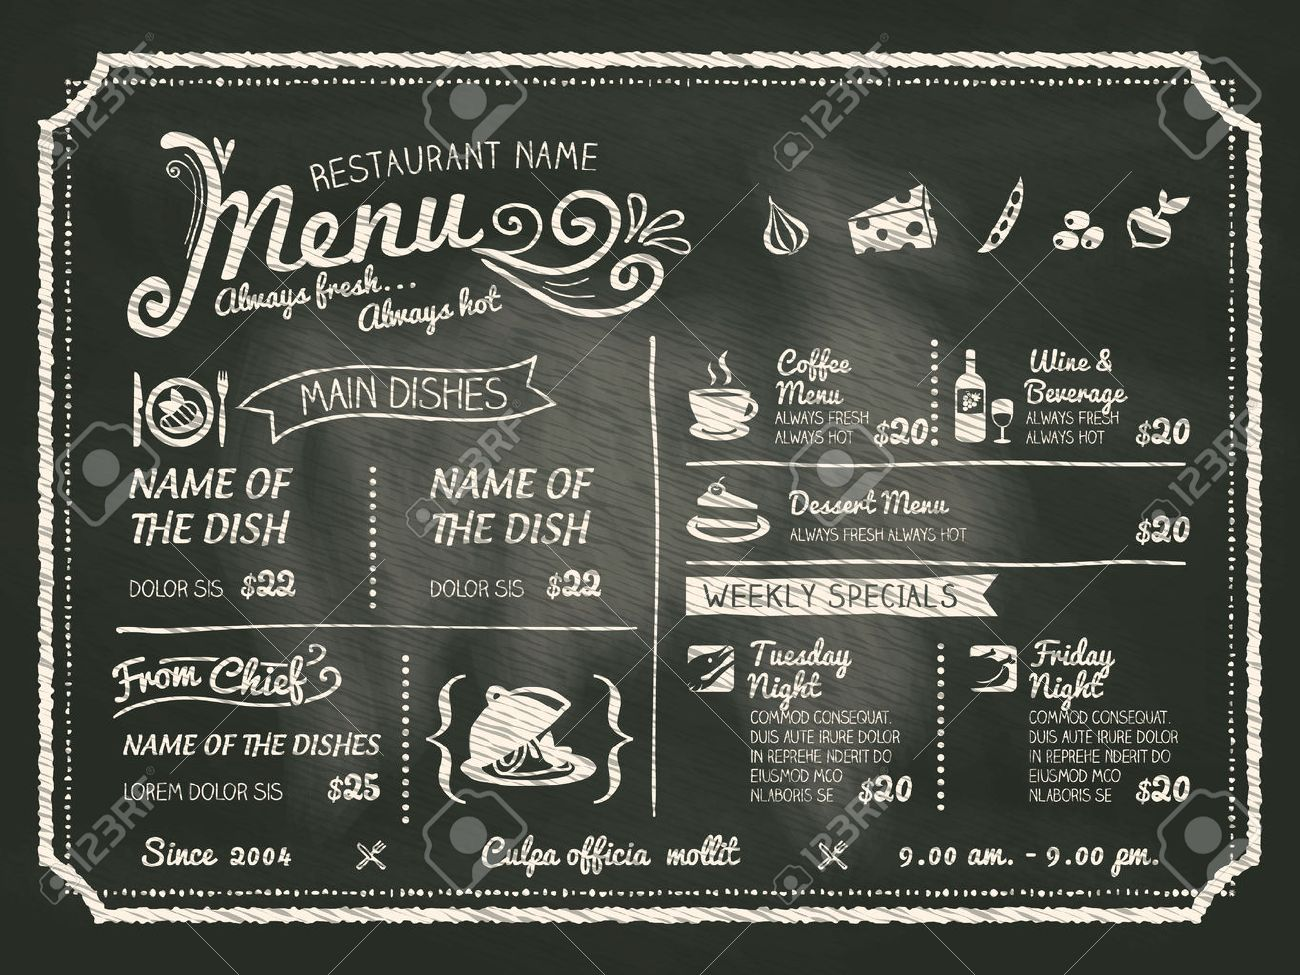 restaurant food menu design with chalkboard background royalty free